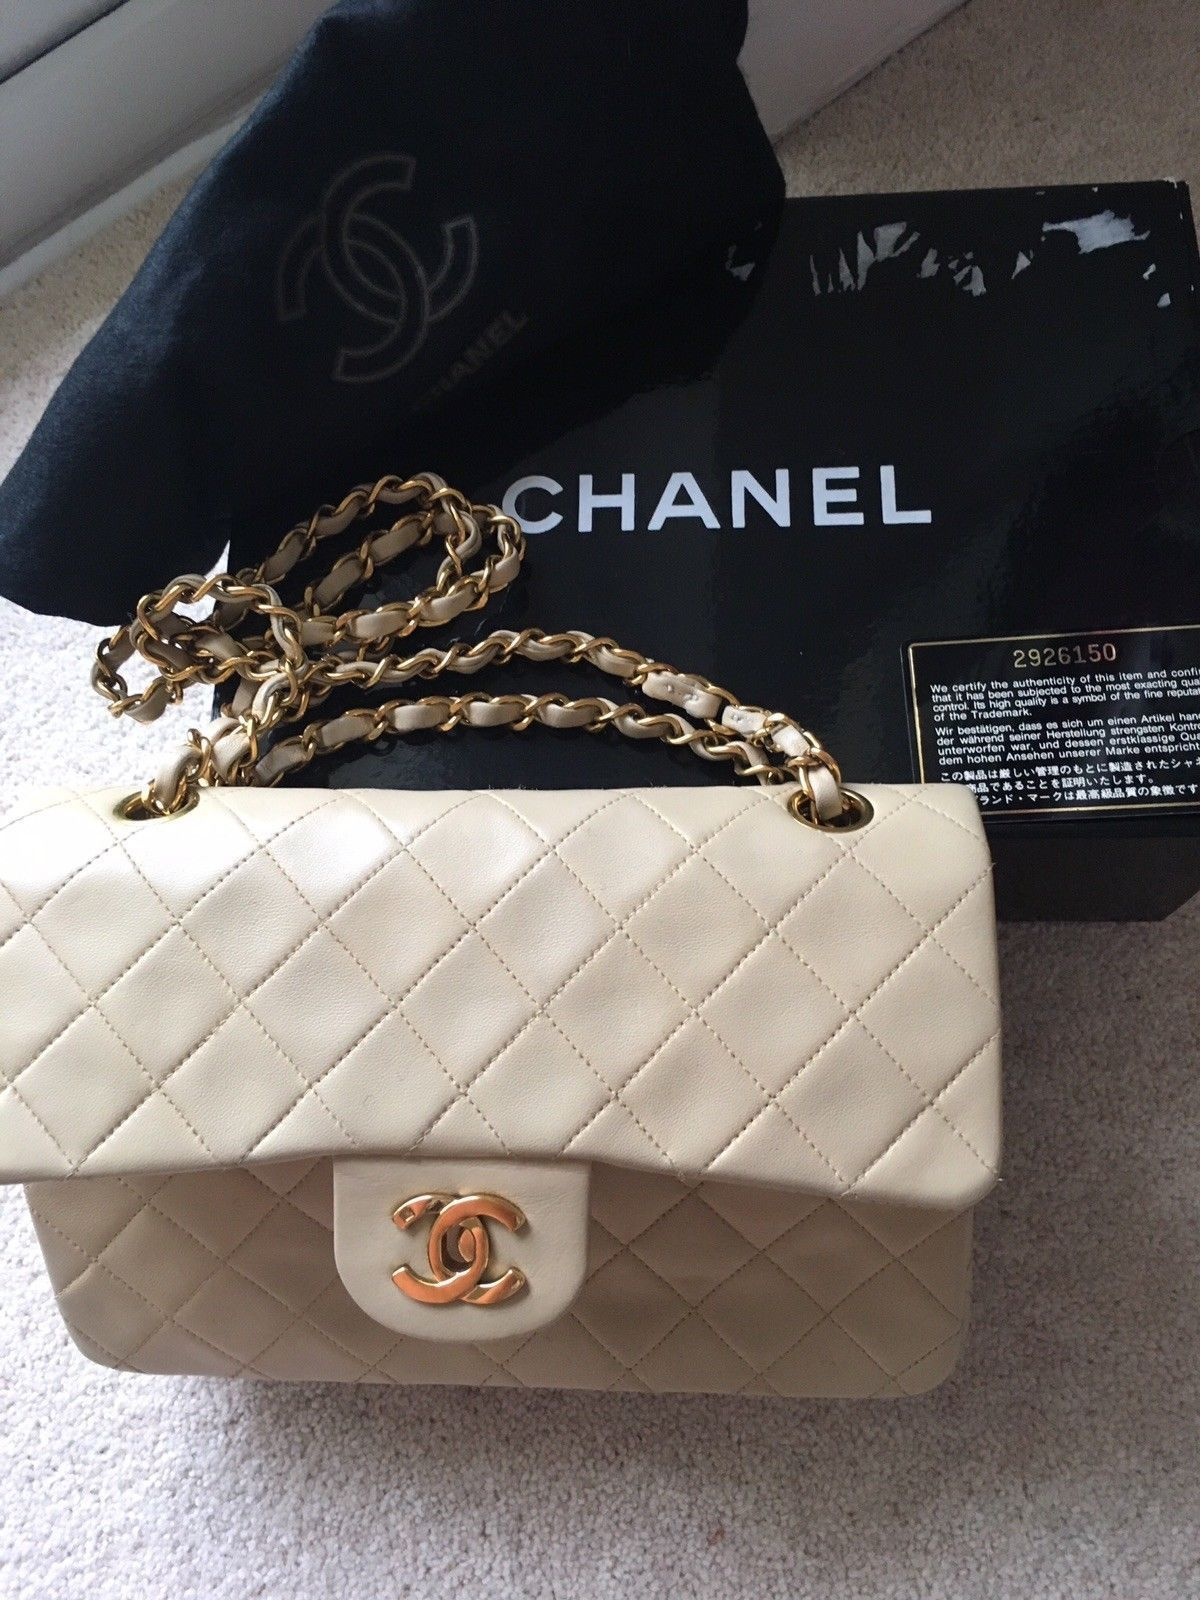 CHANEL BEIGE QUILTED LAMBSKIN VINTAGE SMALL CLASSIC DOUBLE FLAP BAG RARE 24K 6cd88a10e368d